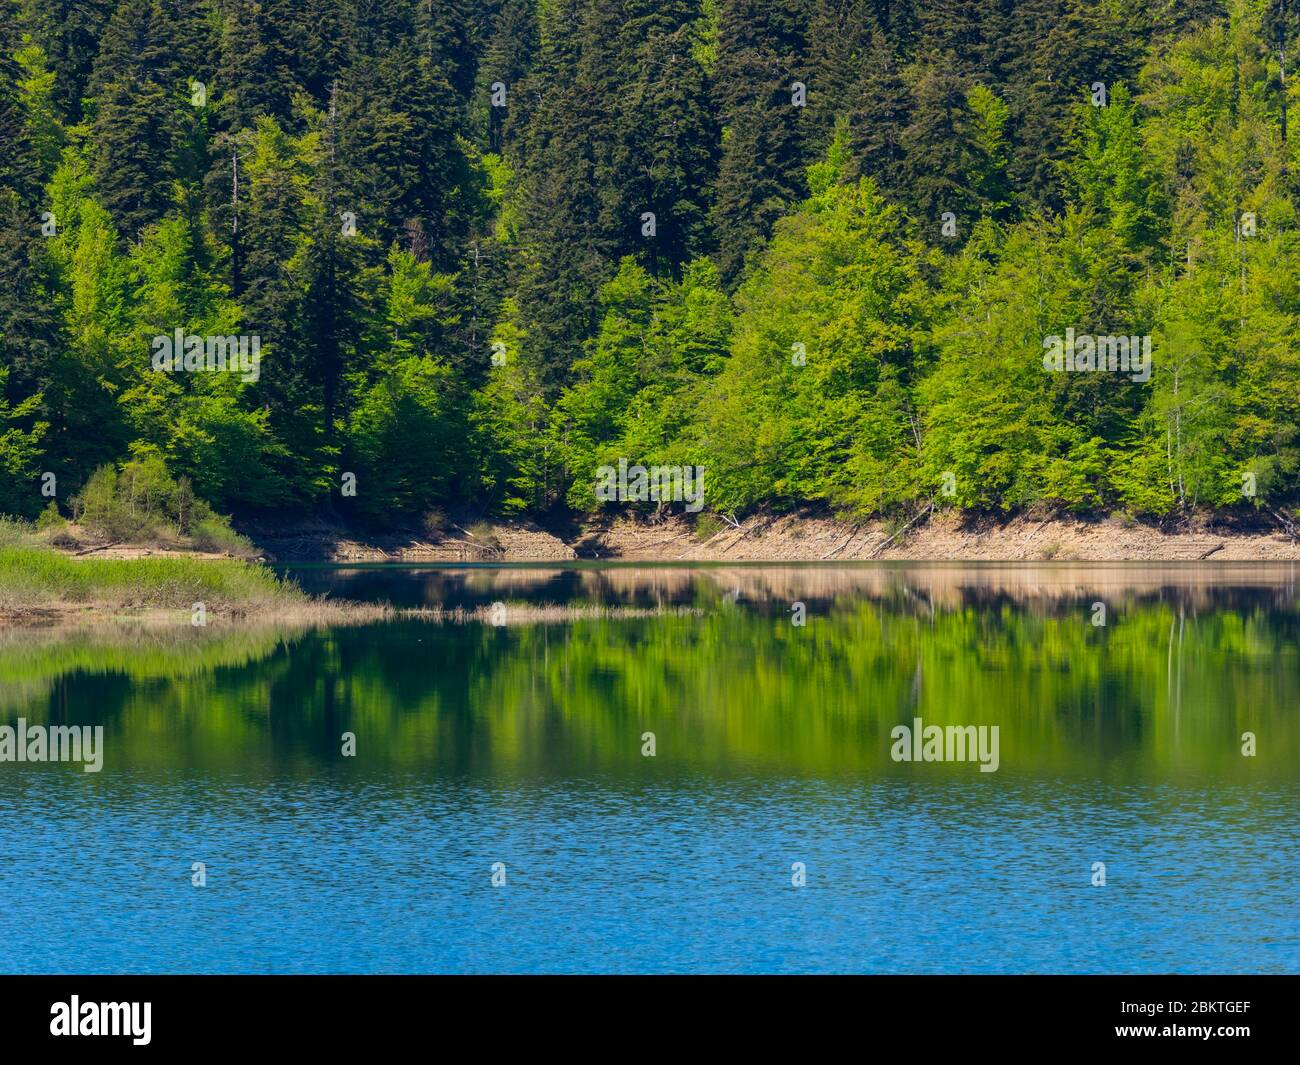 Spring season in Green forest Lokve lake Croatia Europe Stock Photo